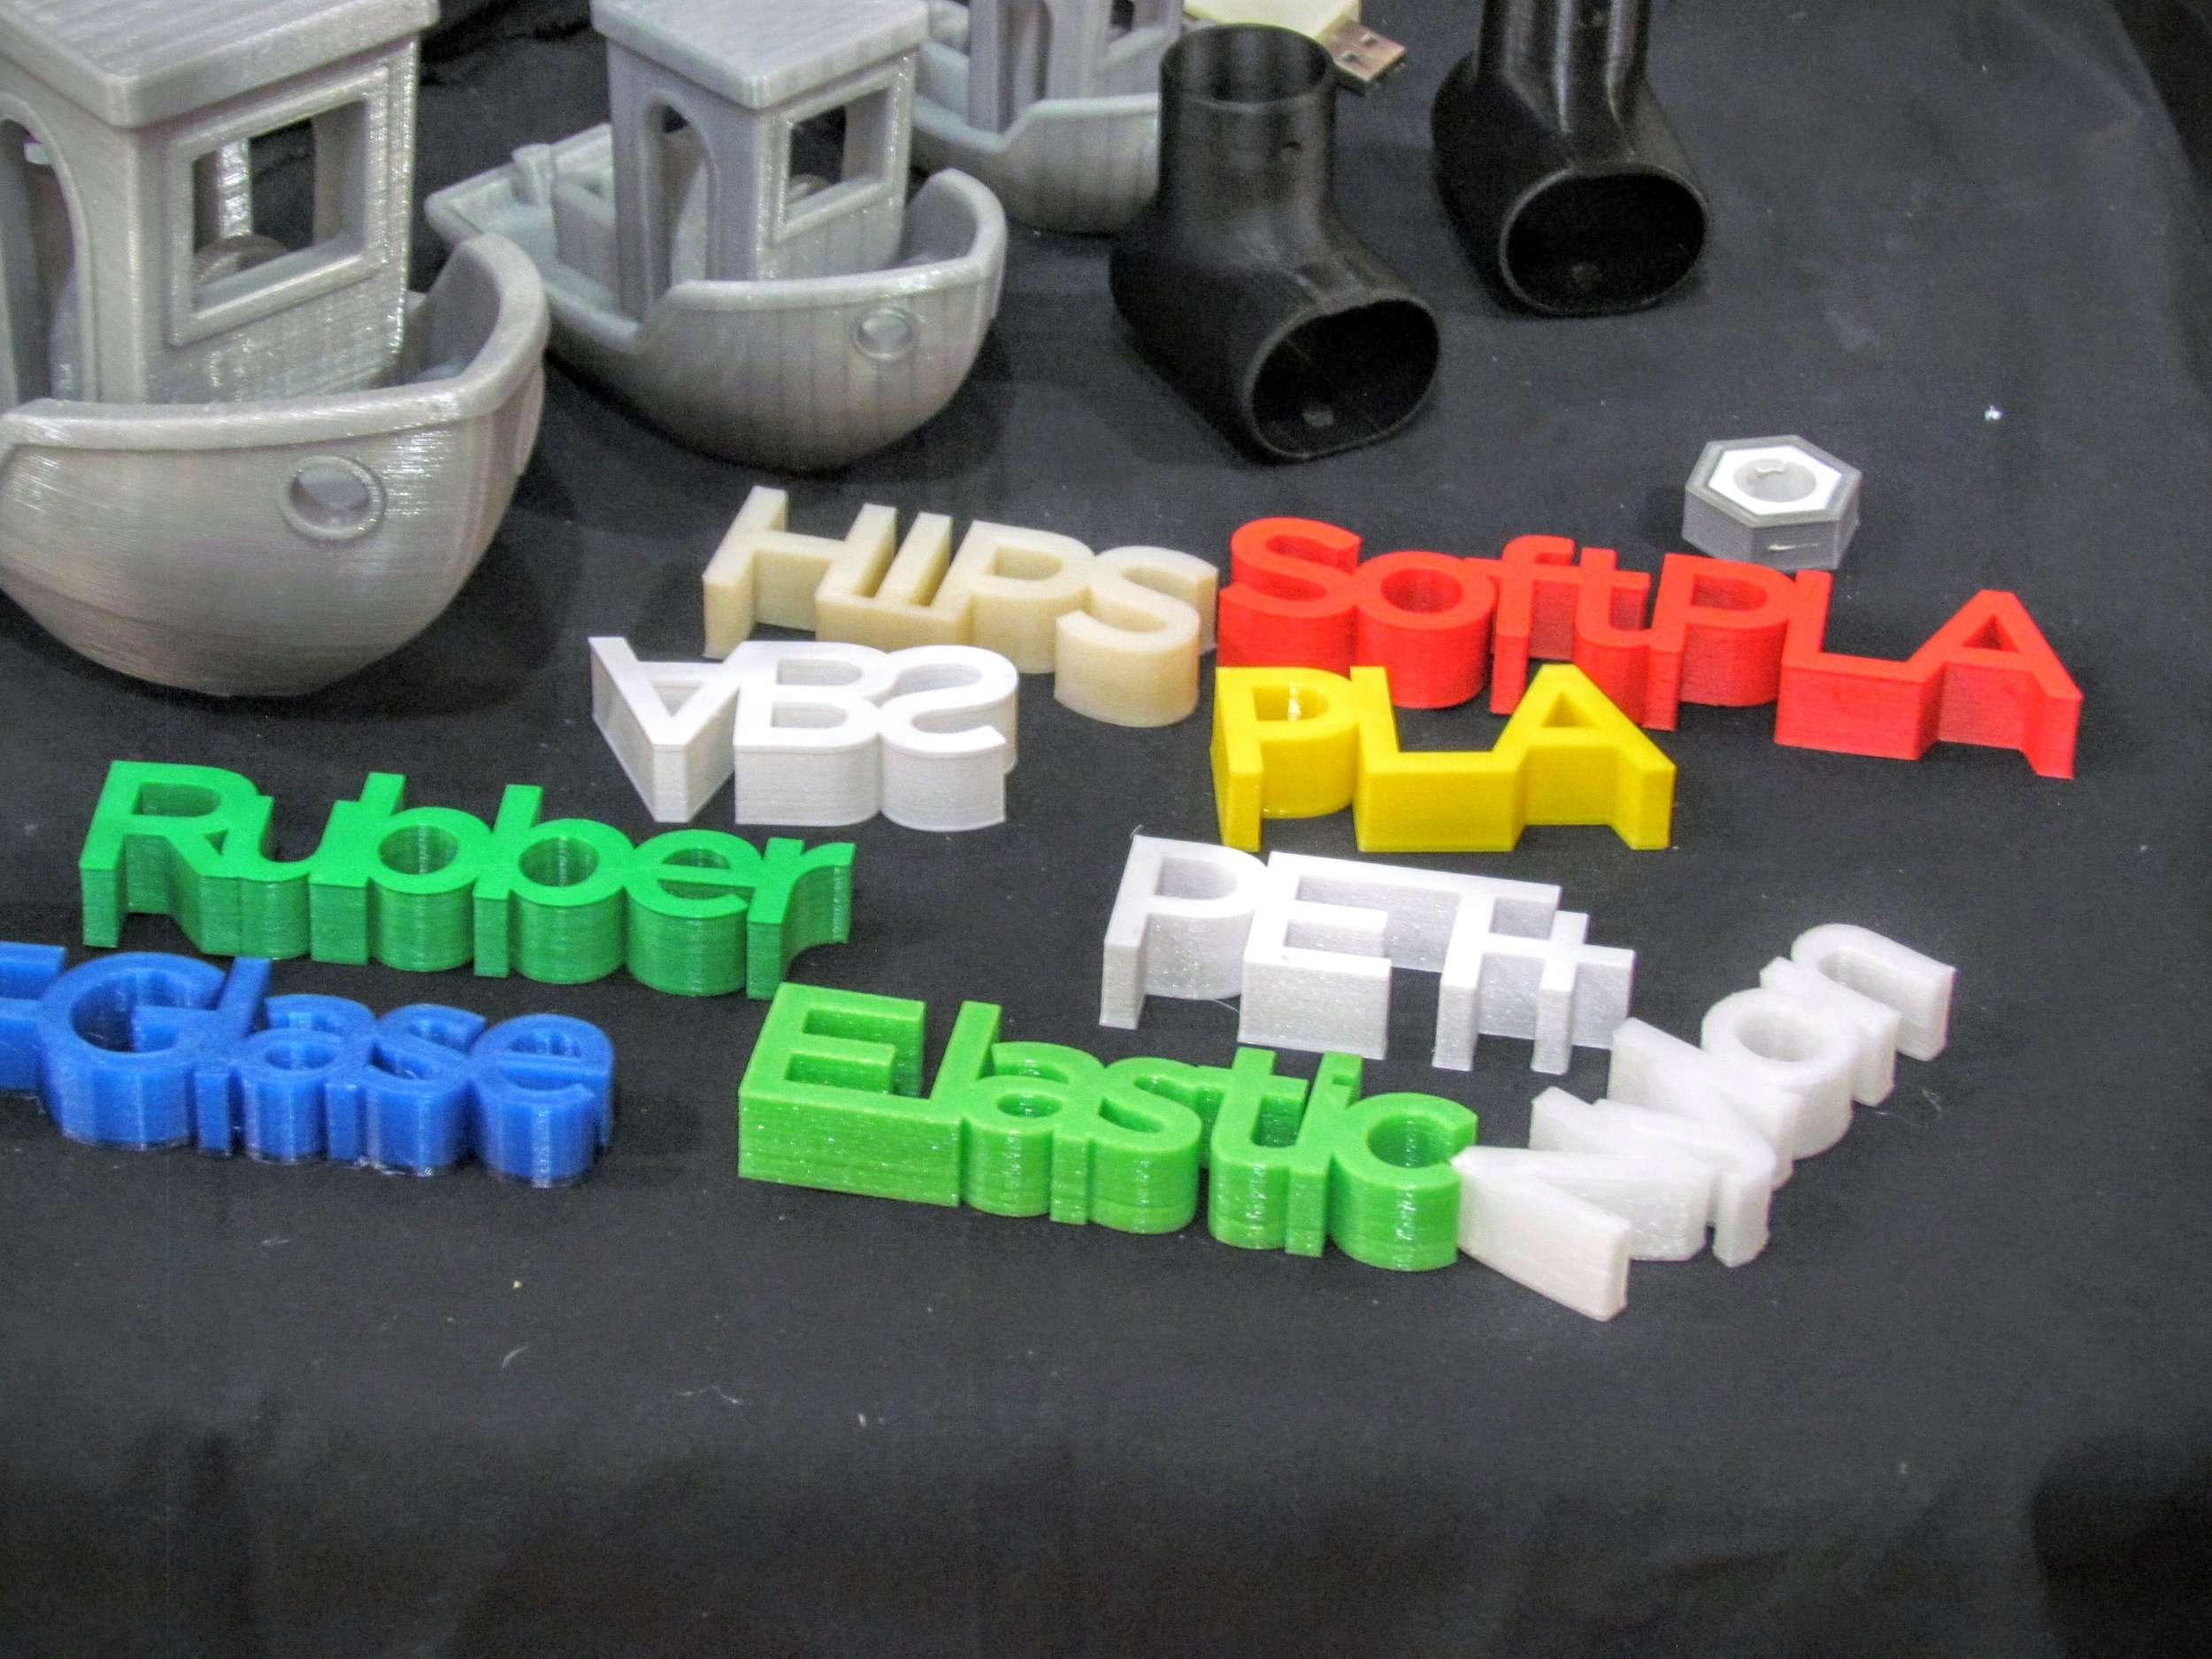 A selection of 3D prints made from many different types of plastic